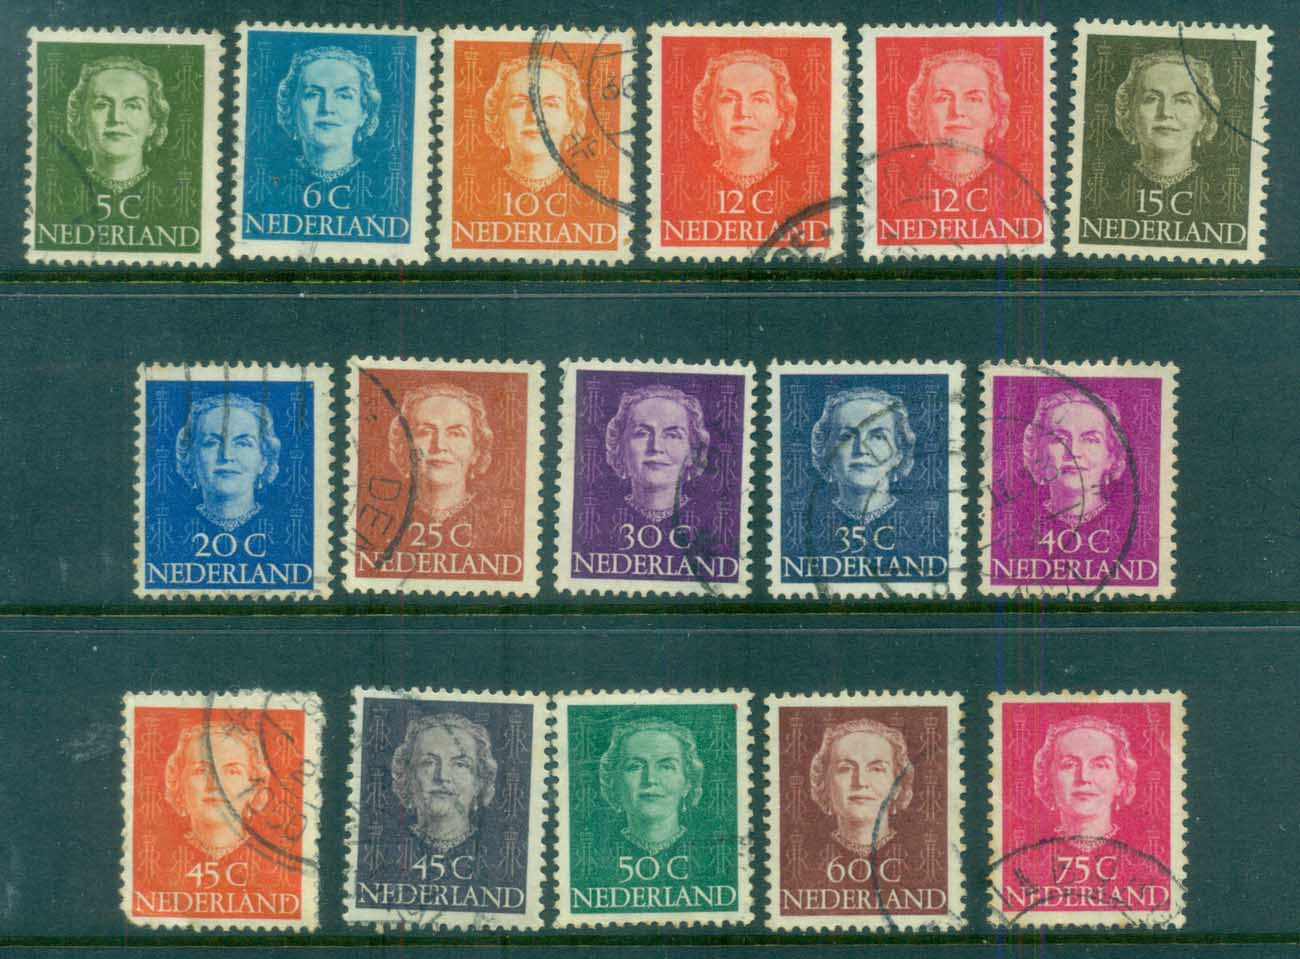 Netherlands 1949 Queen Juliana FU lot76639